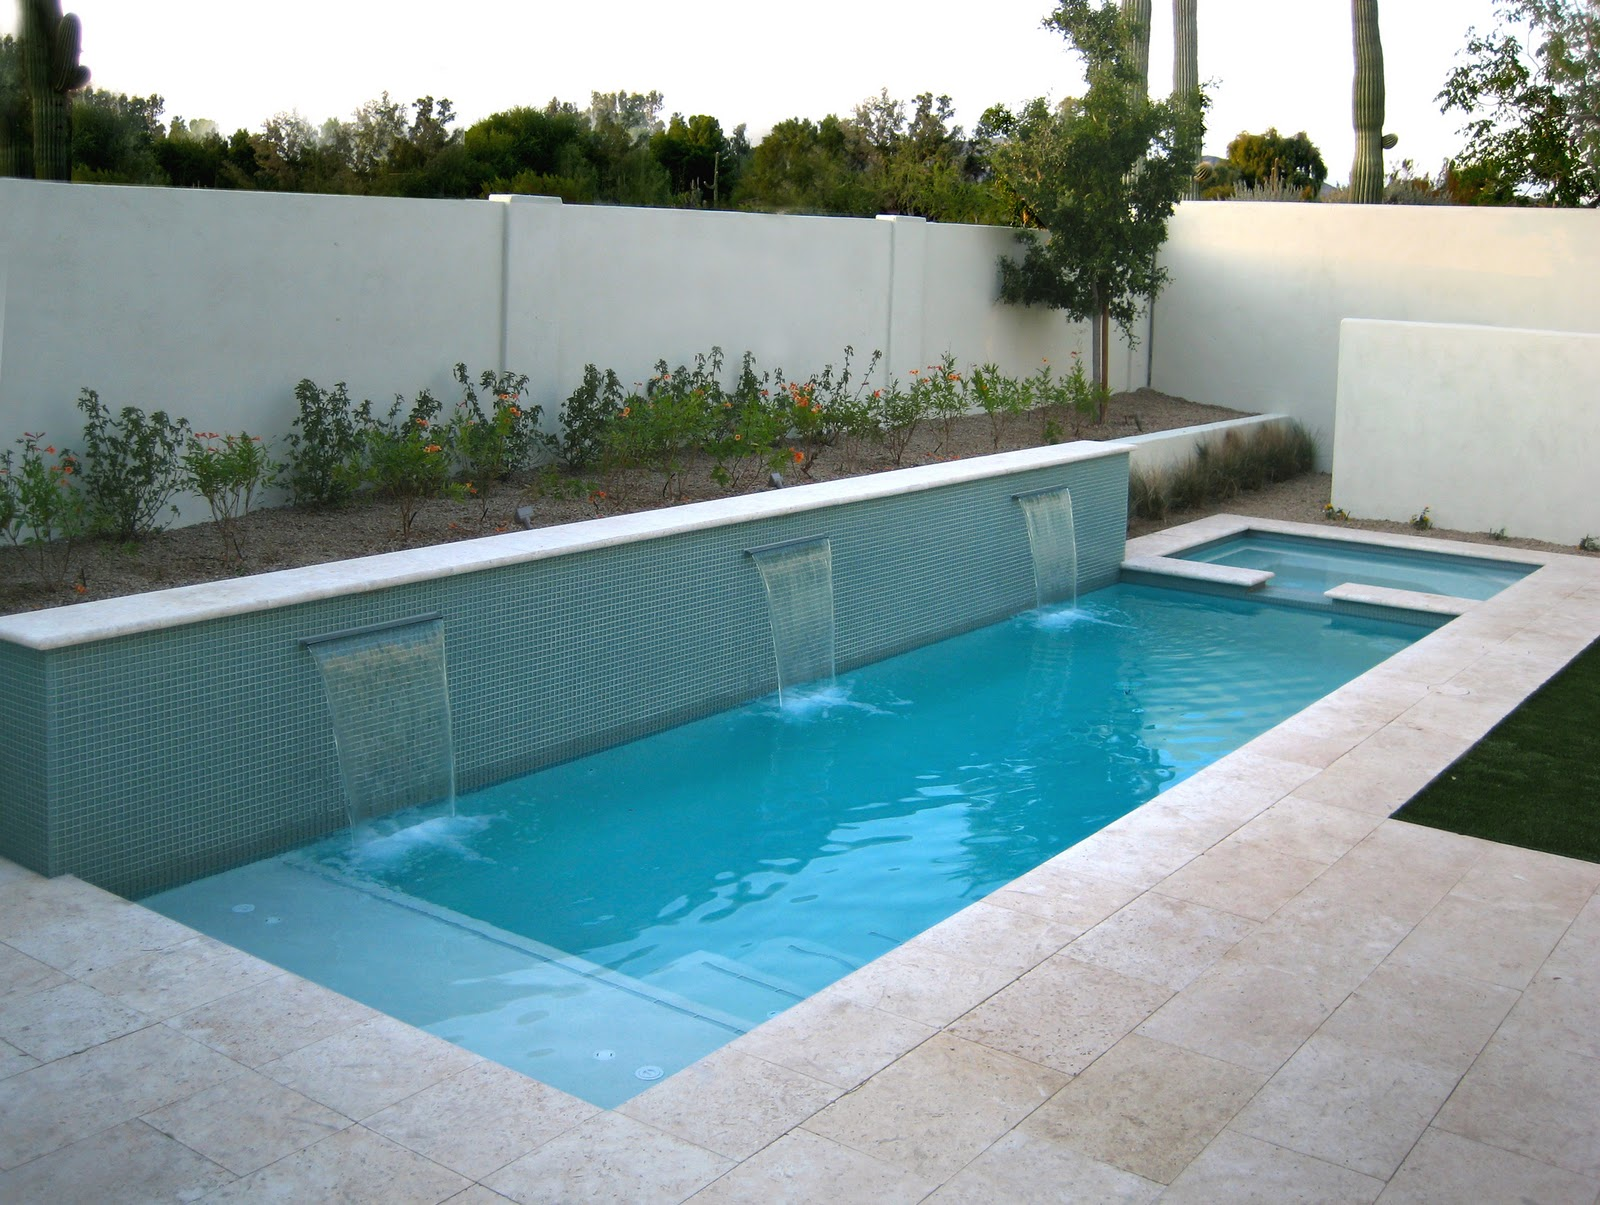 Swimming pools in small spaces alpentile glass tile for Piscine semi enterree 6x4